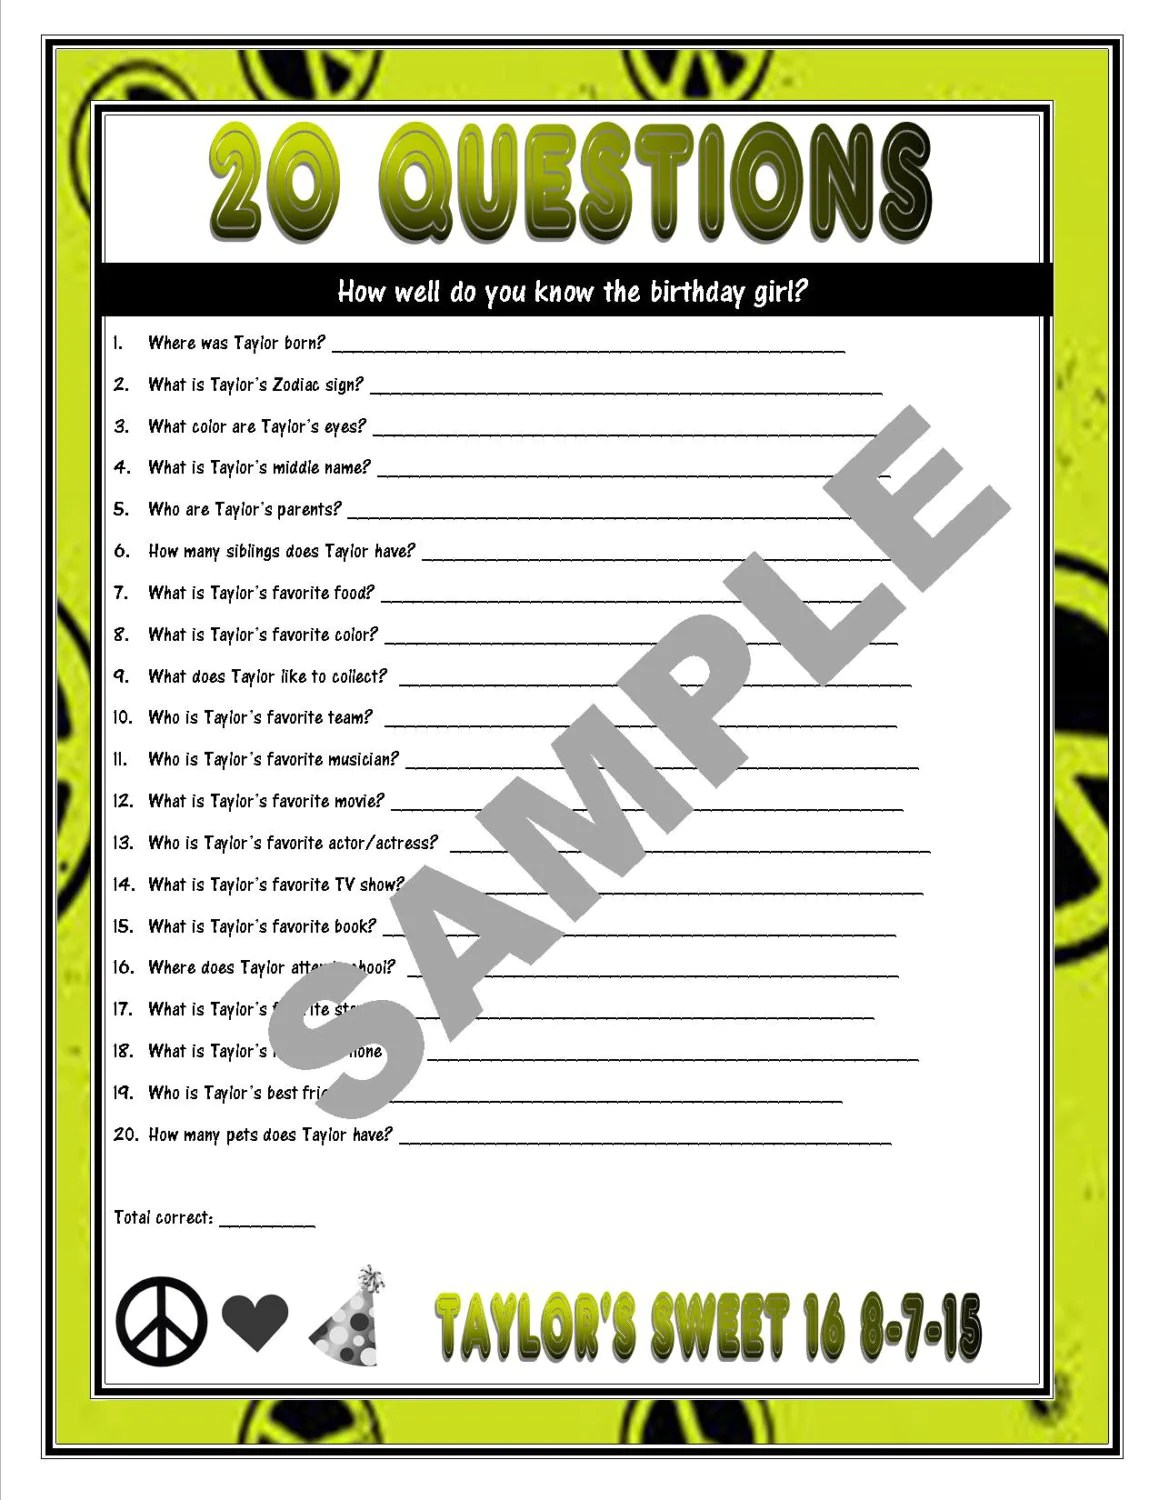 20 Questions Printable Birthday Game How Well Do You Know